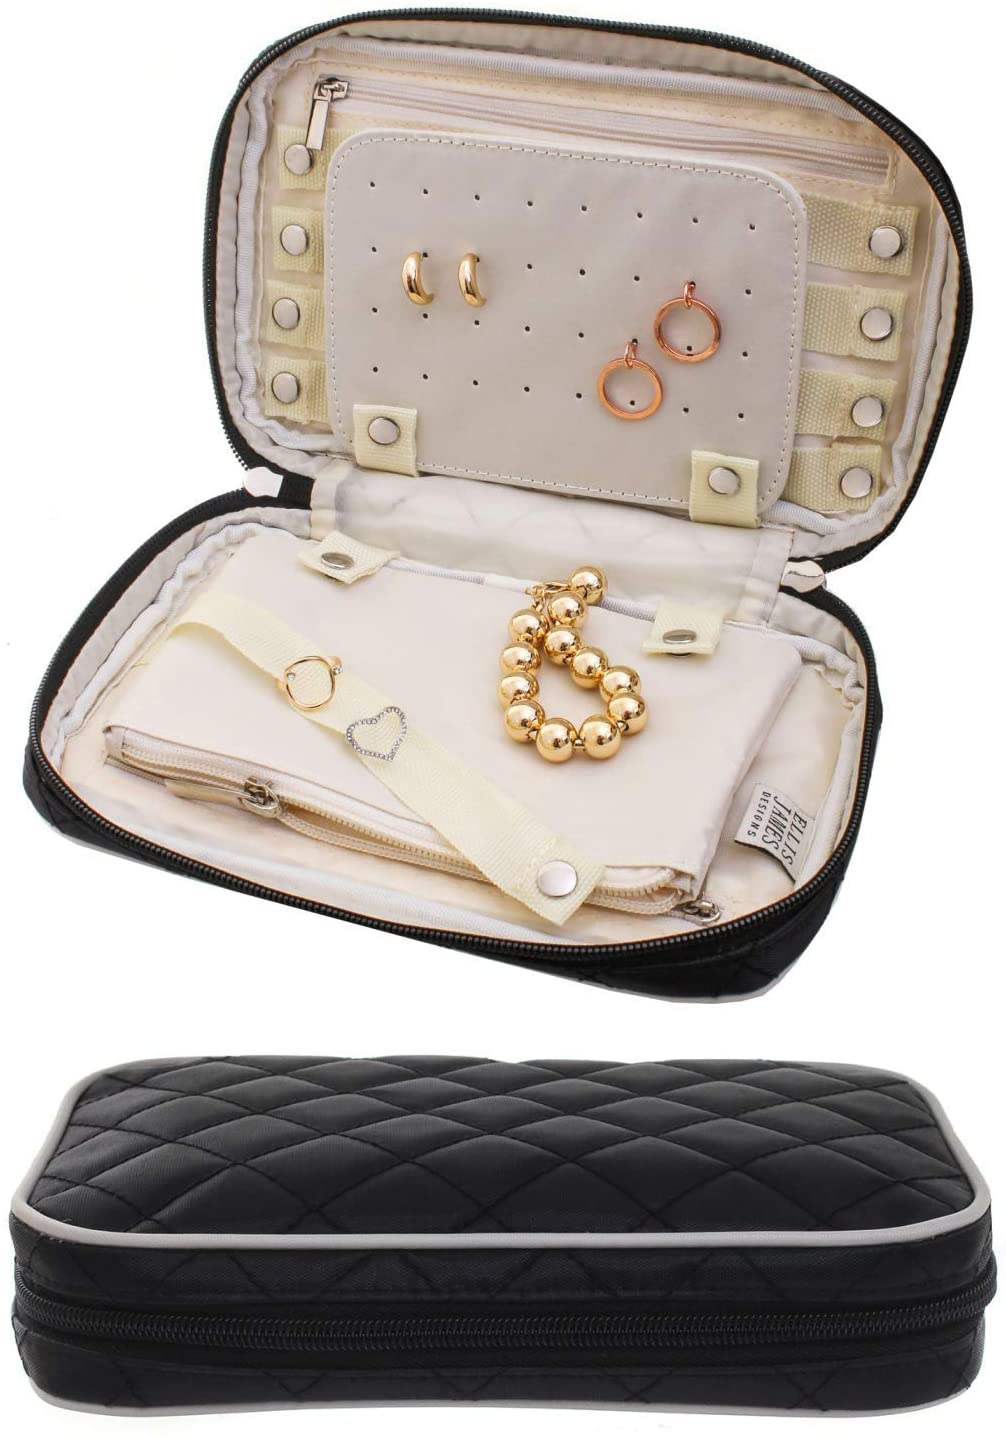 unique travel gifts - jewellery case